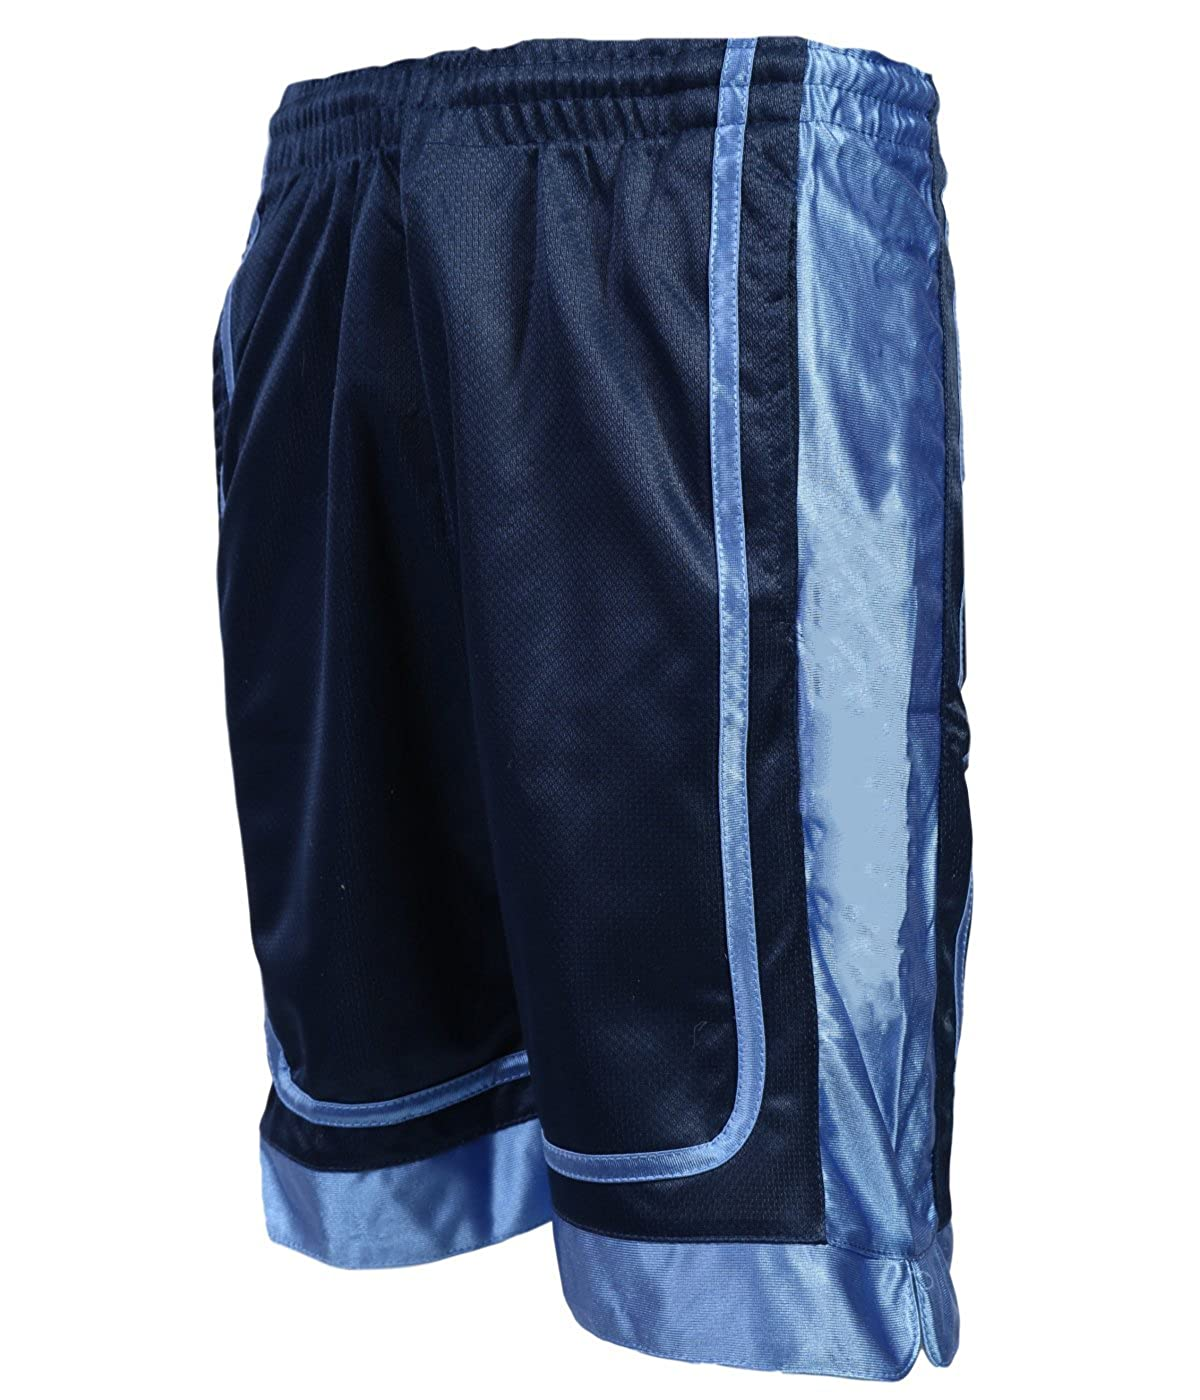 Galaxy by Harvic Boys Two-Tone Active Mesh Basketball Short Navy/Blue Small 8'